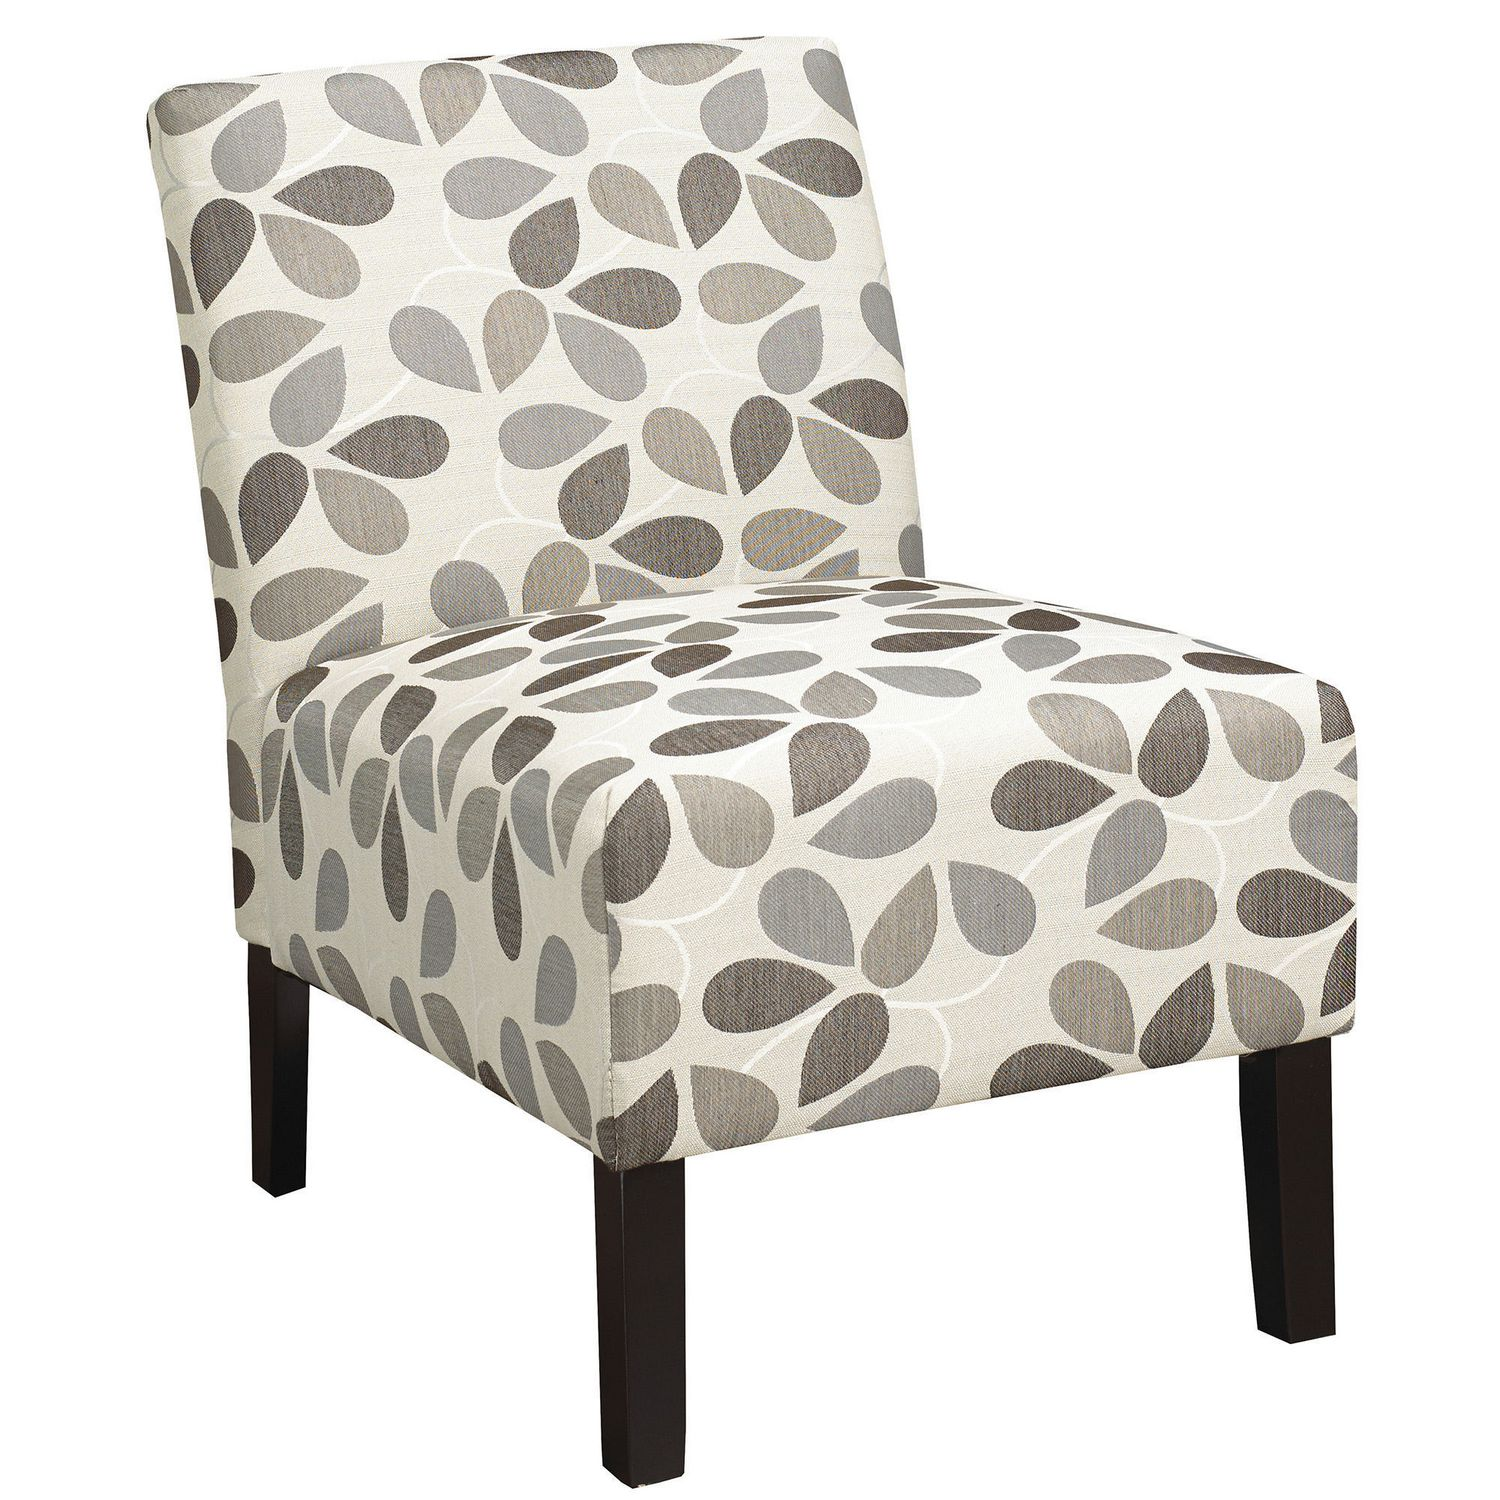 Accent Chairs Lounge Furniture for Home at Walmartca